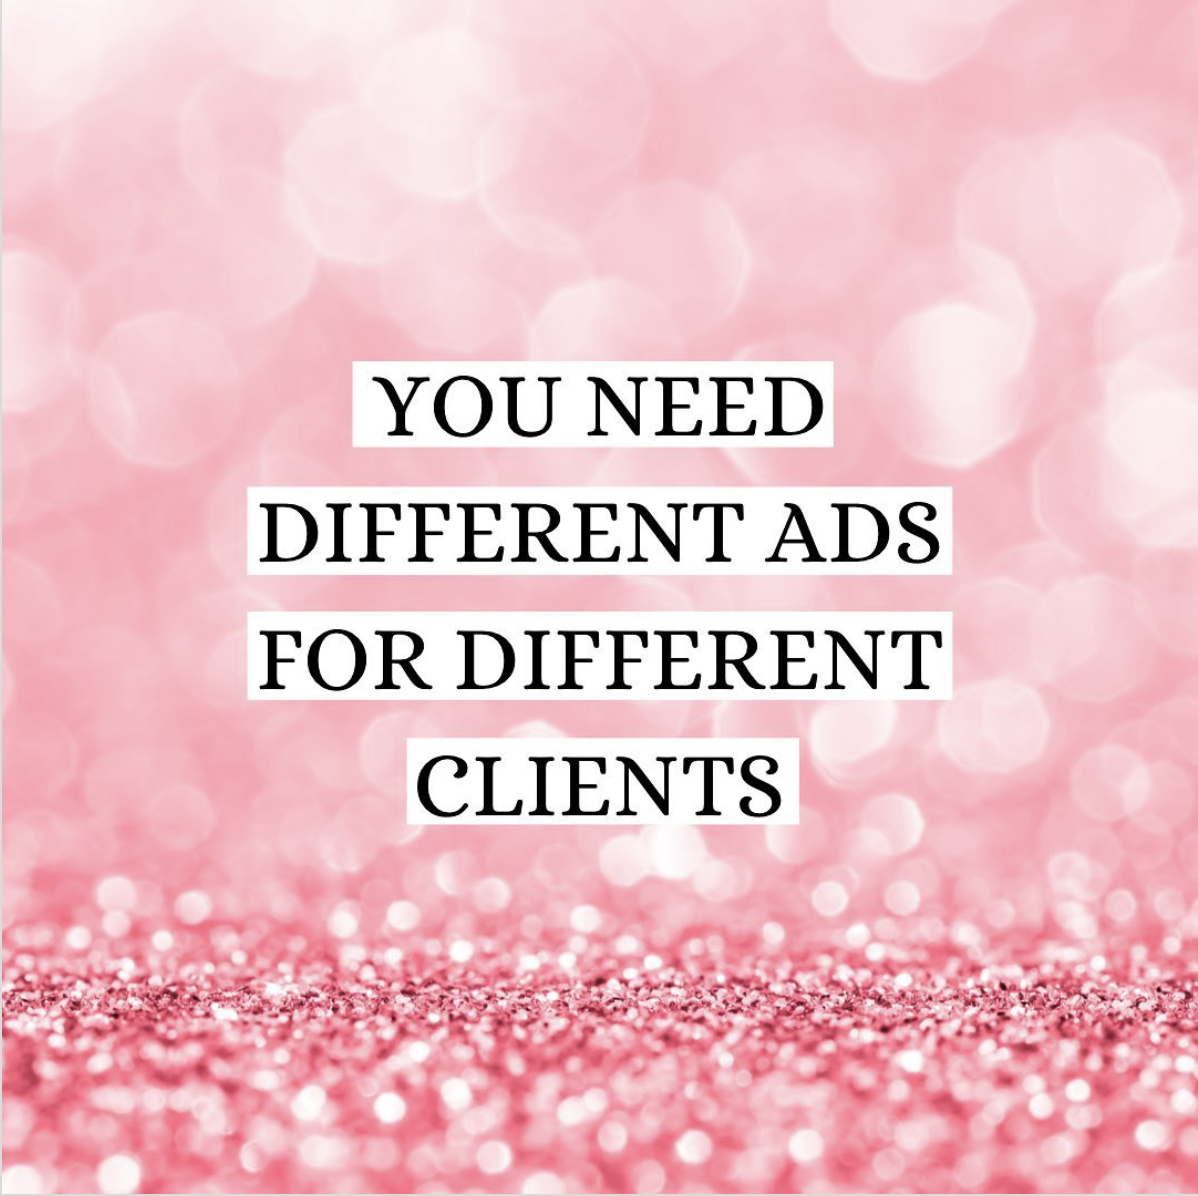 You need different ads for different clients